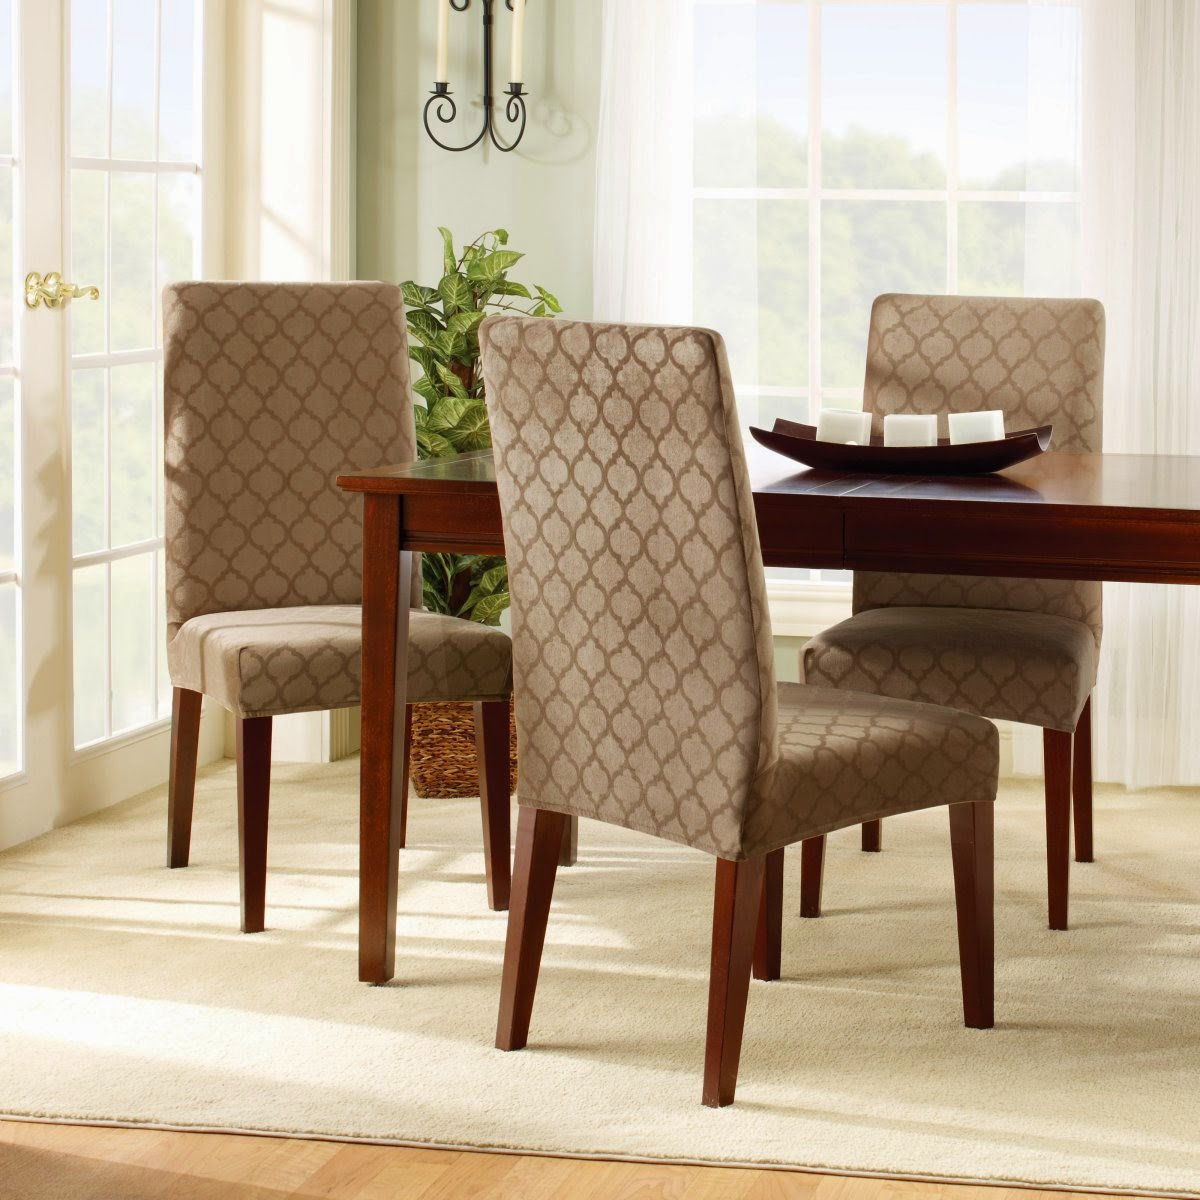 dining chair covers for your dining room ~ instant knowledge